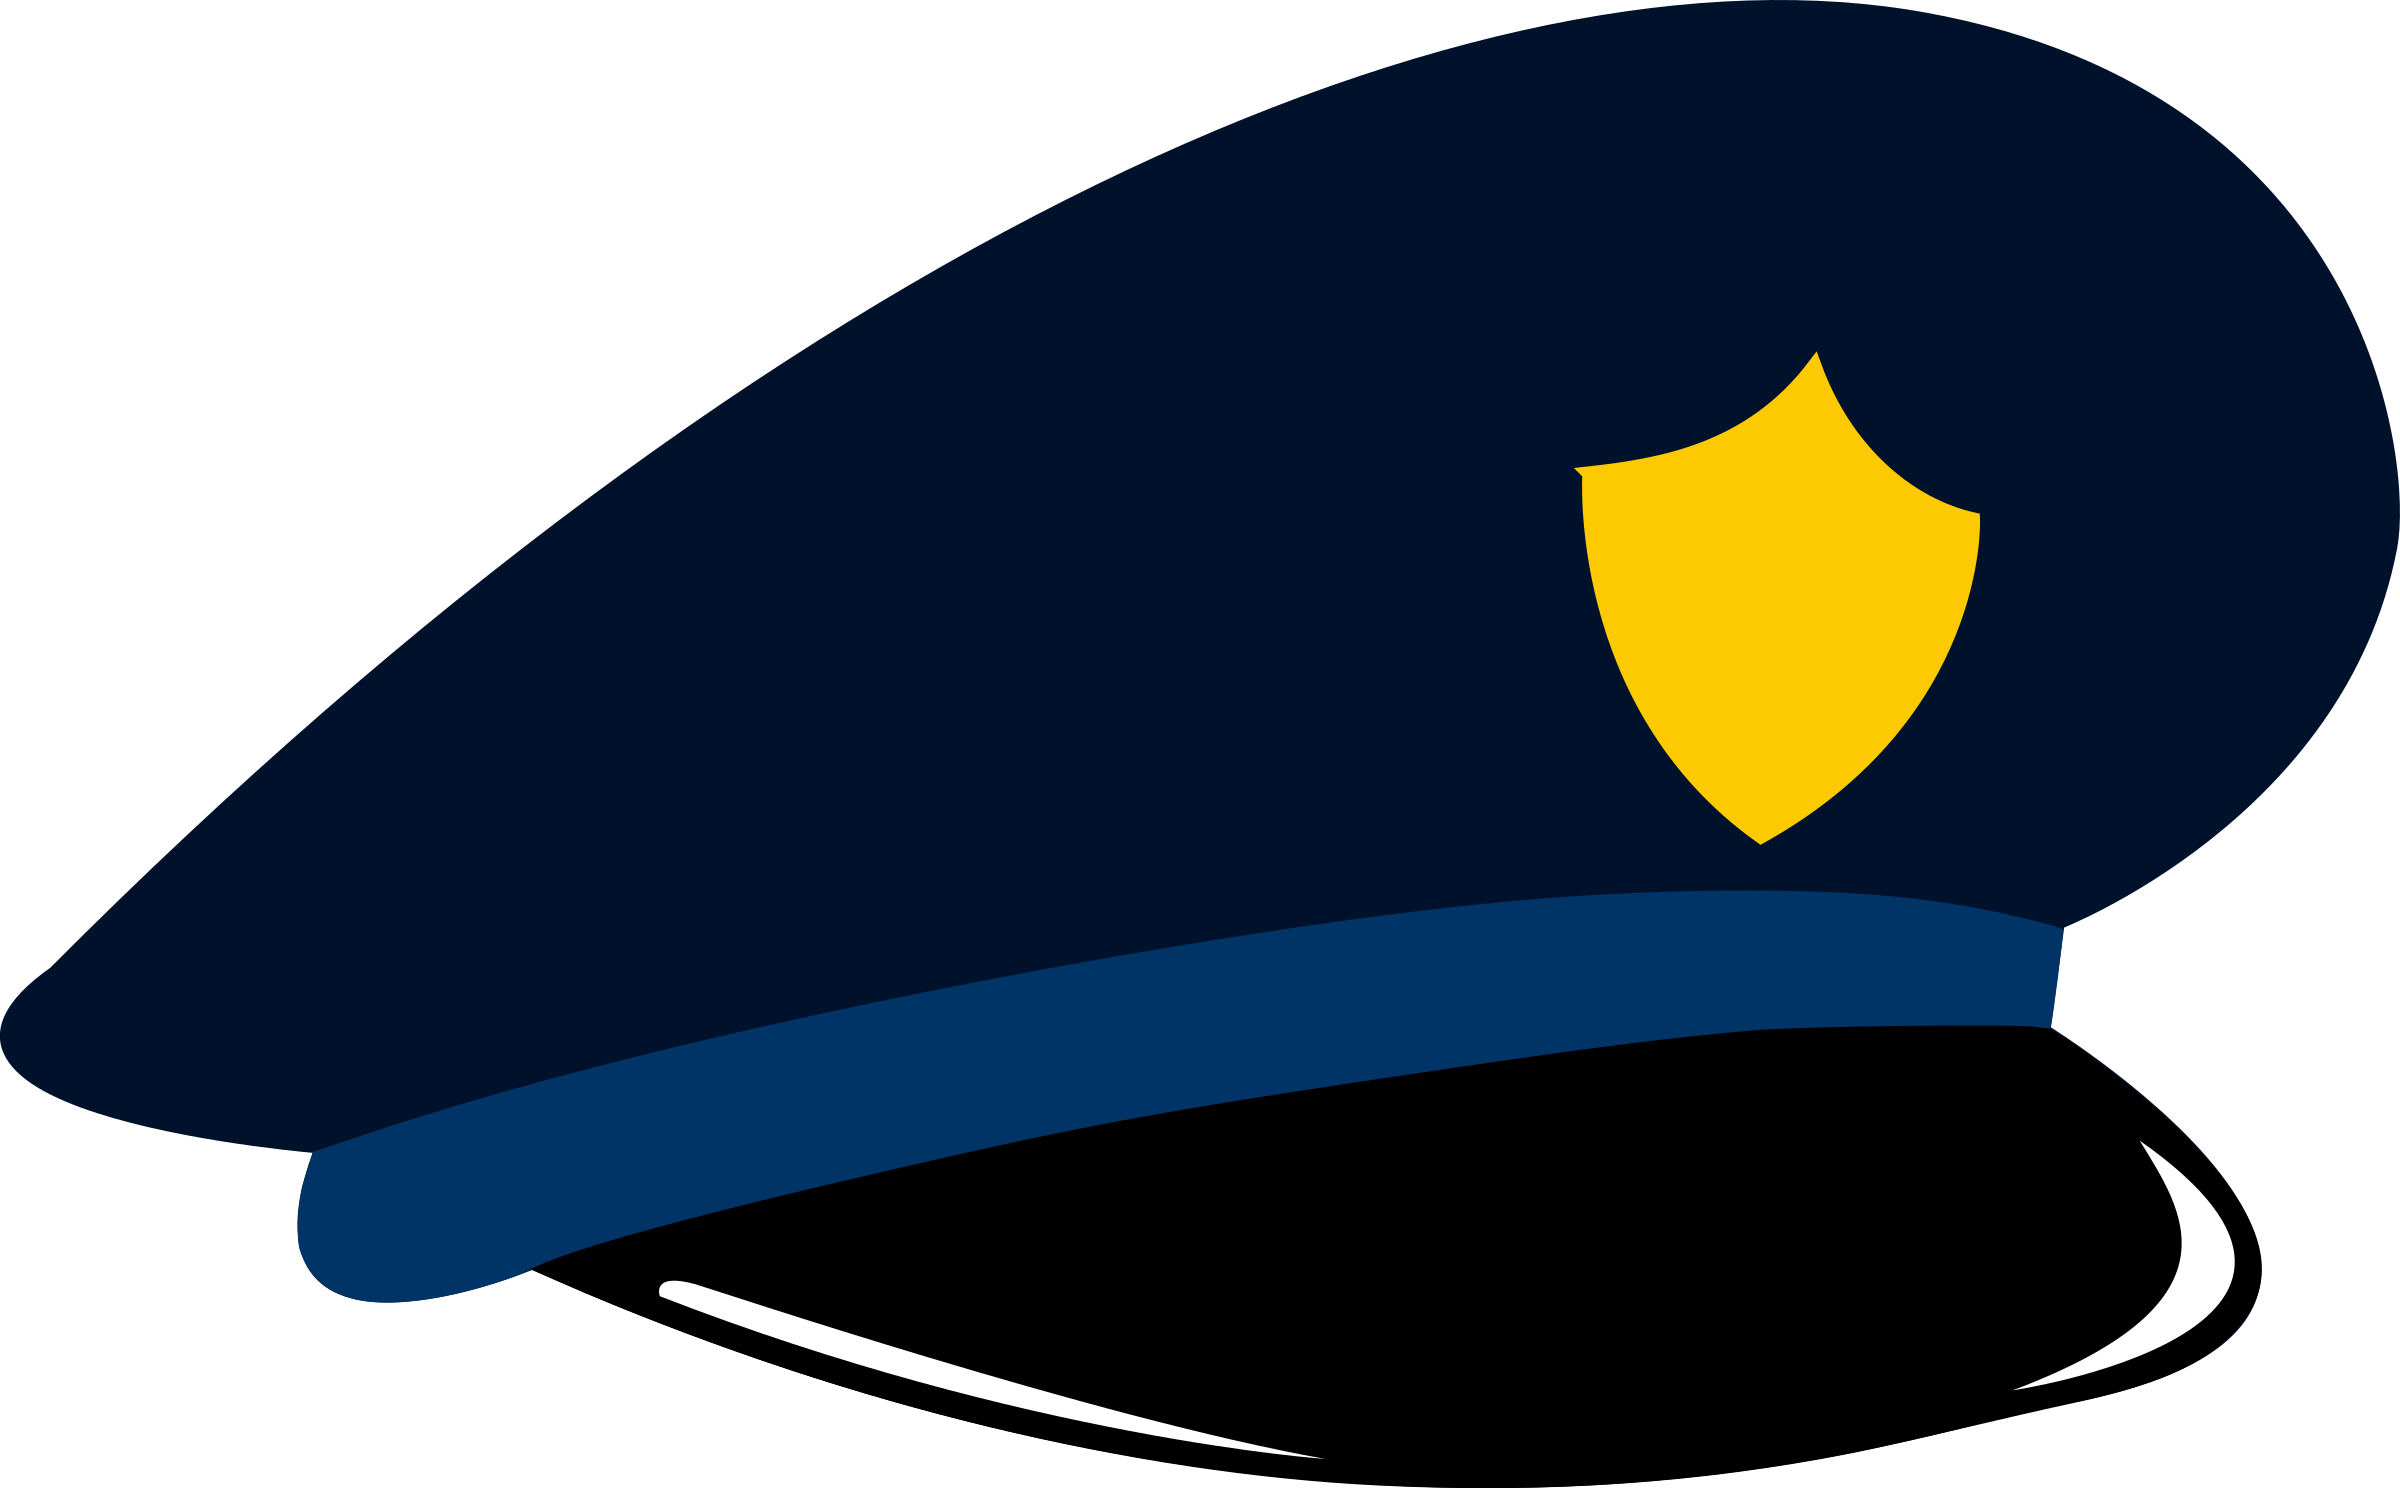 clipart police cap rh openclipart org clipart policeman cap police cap clipart